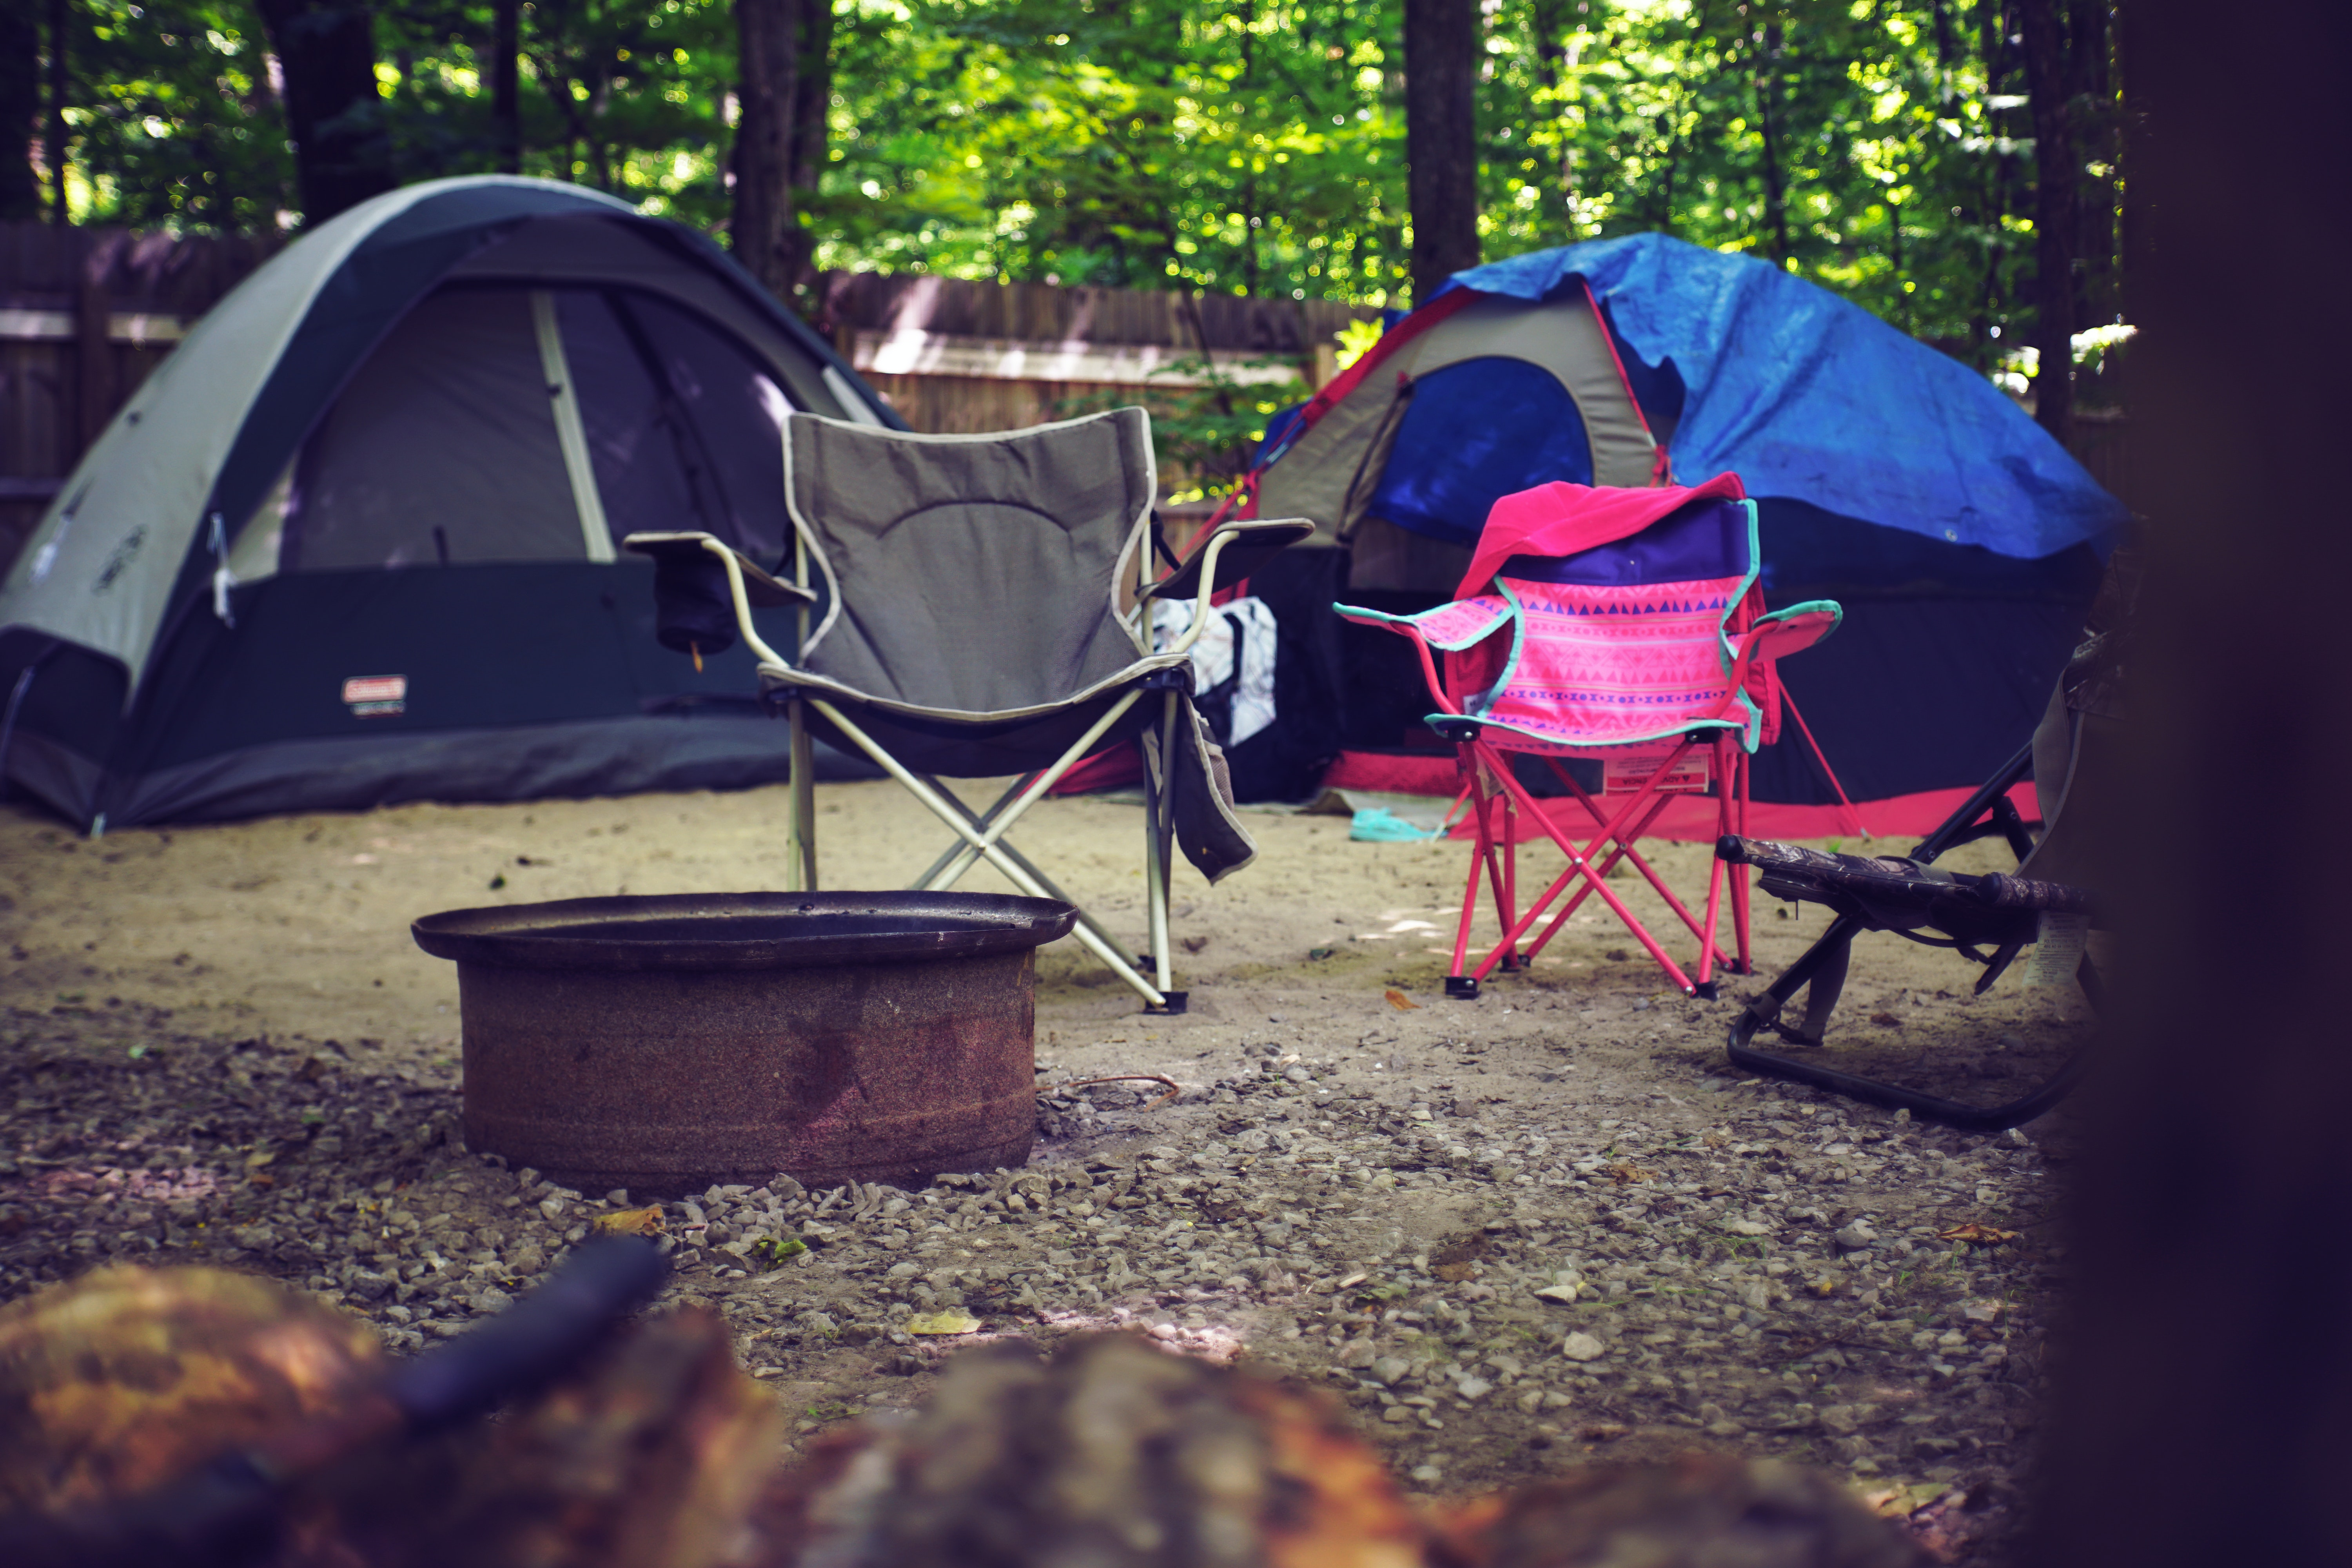 campsite with chairs